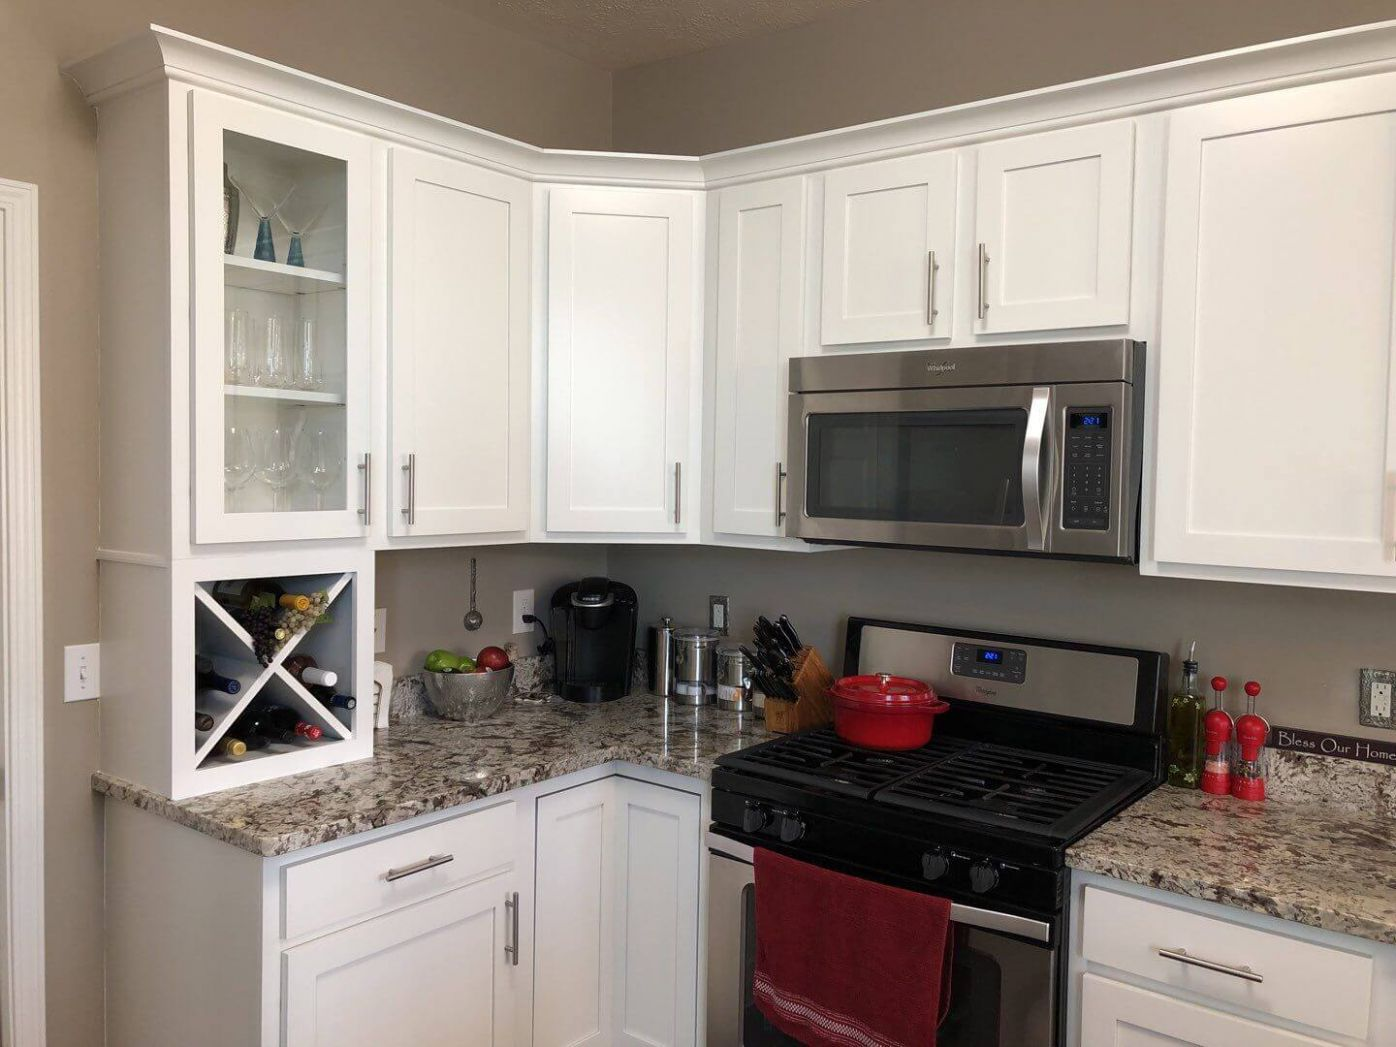 What Color Should I Paint My Kitchen Cabinets? | Textbook Painting